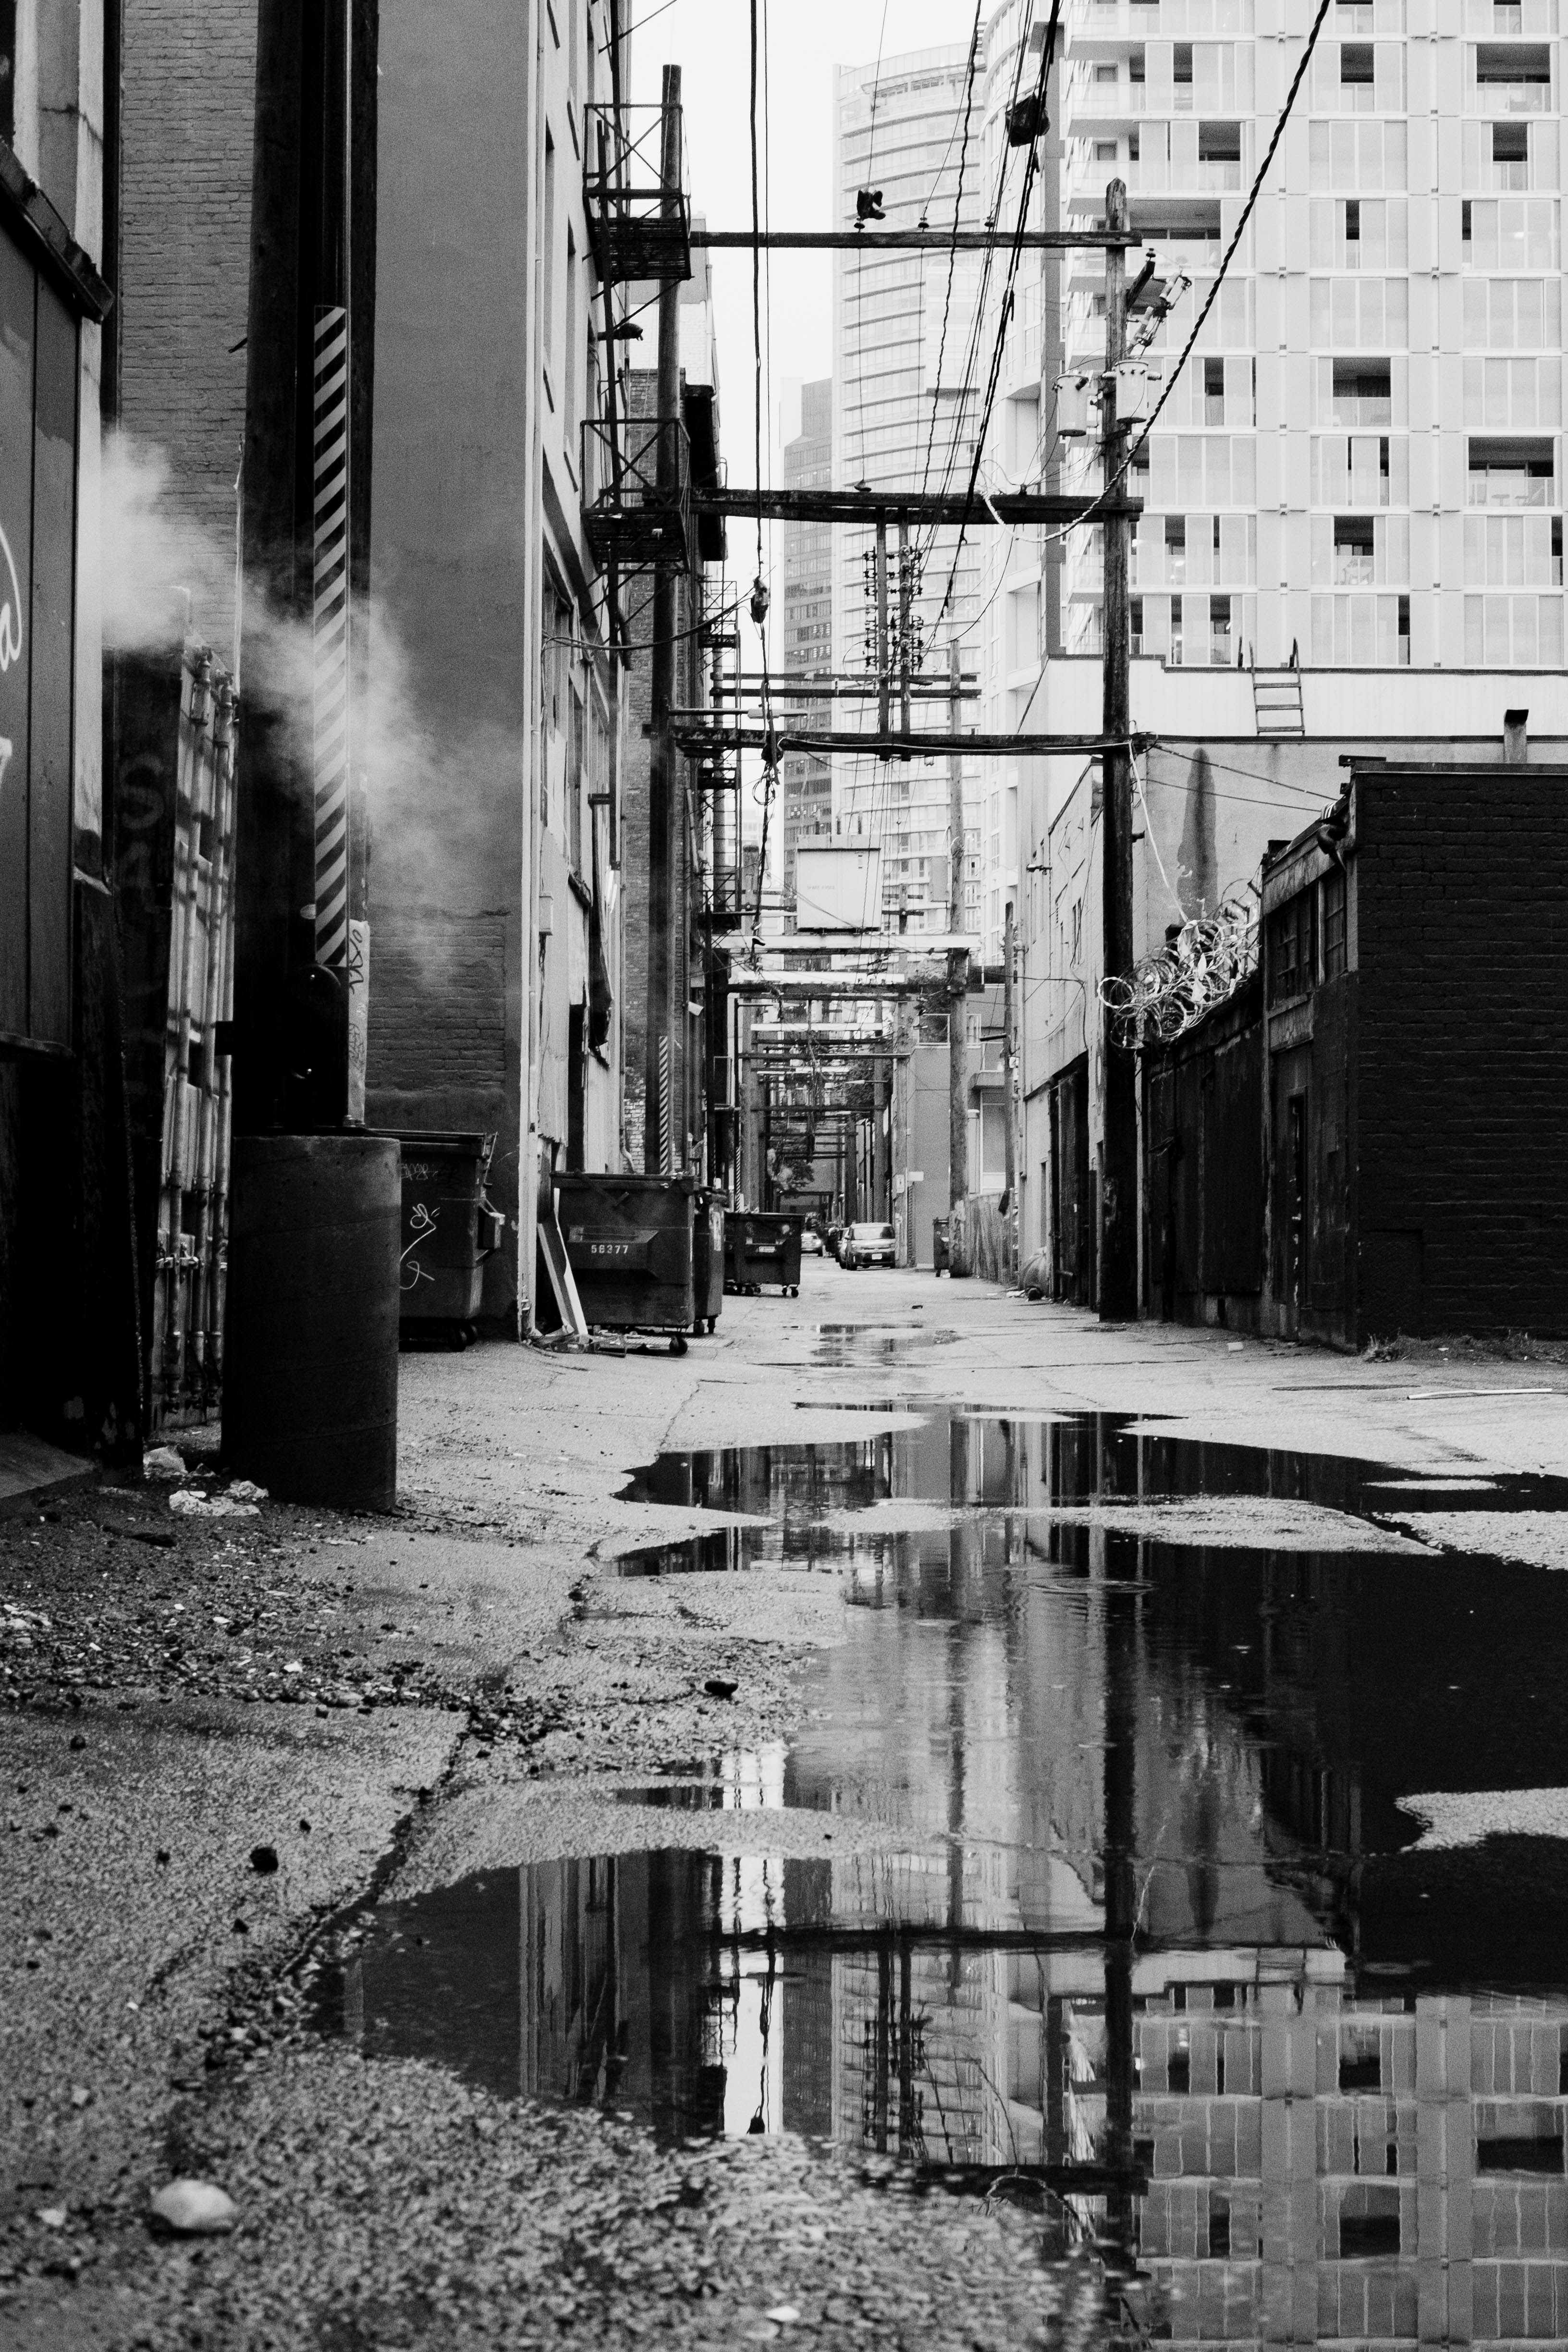 rain, alley, Vancouver, reflection, steam, brick